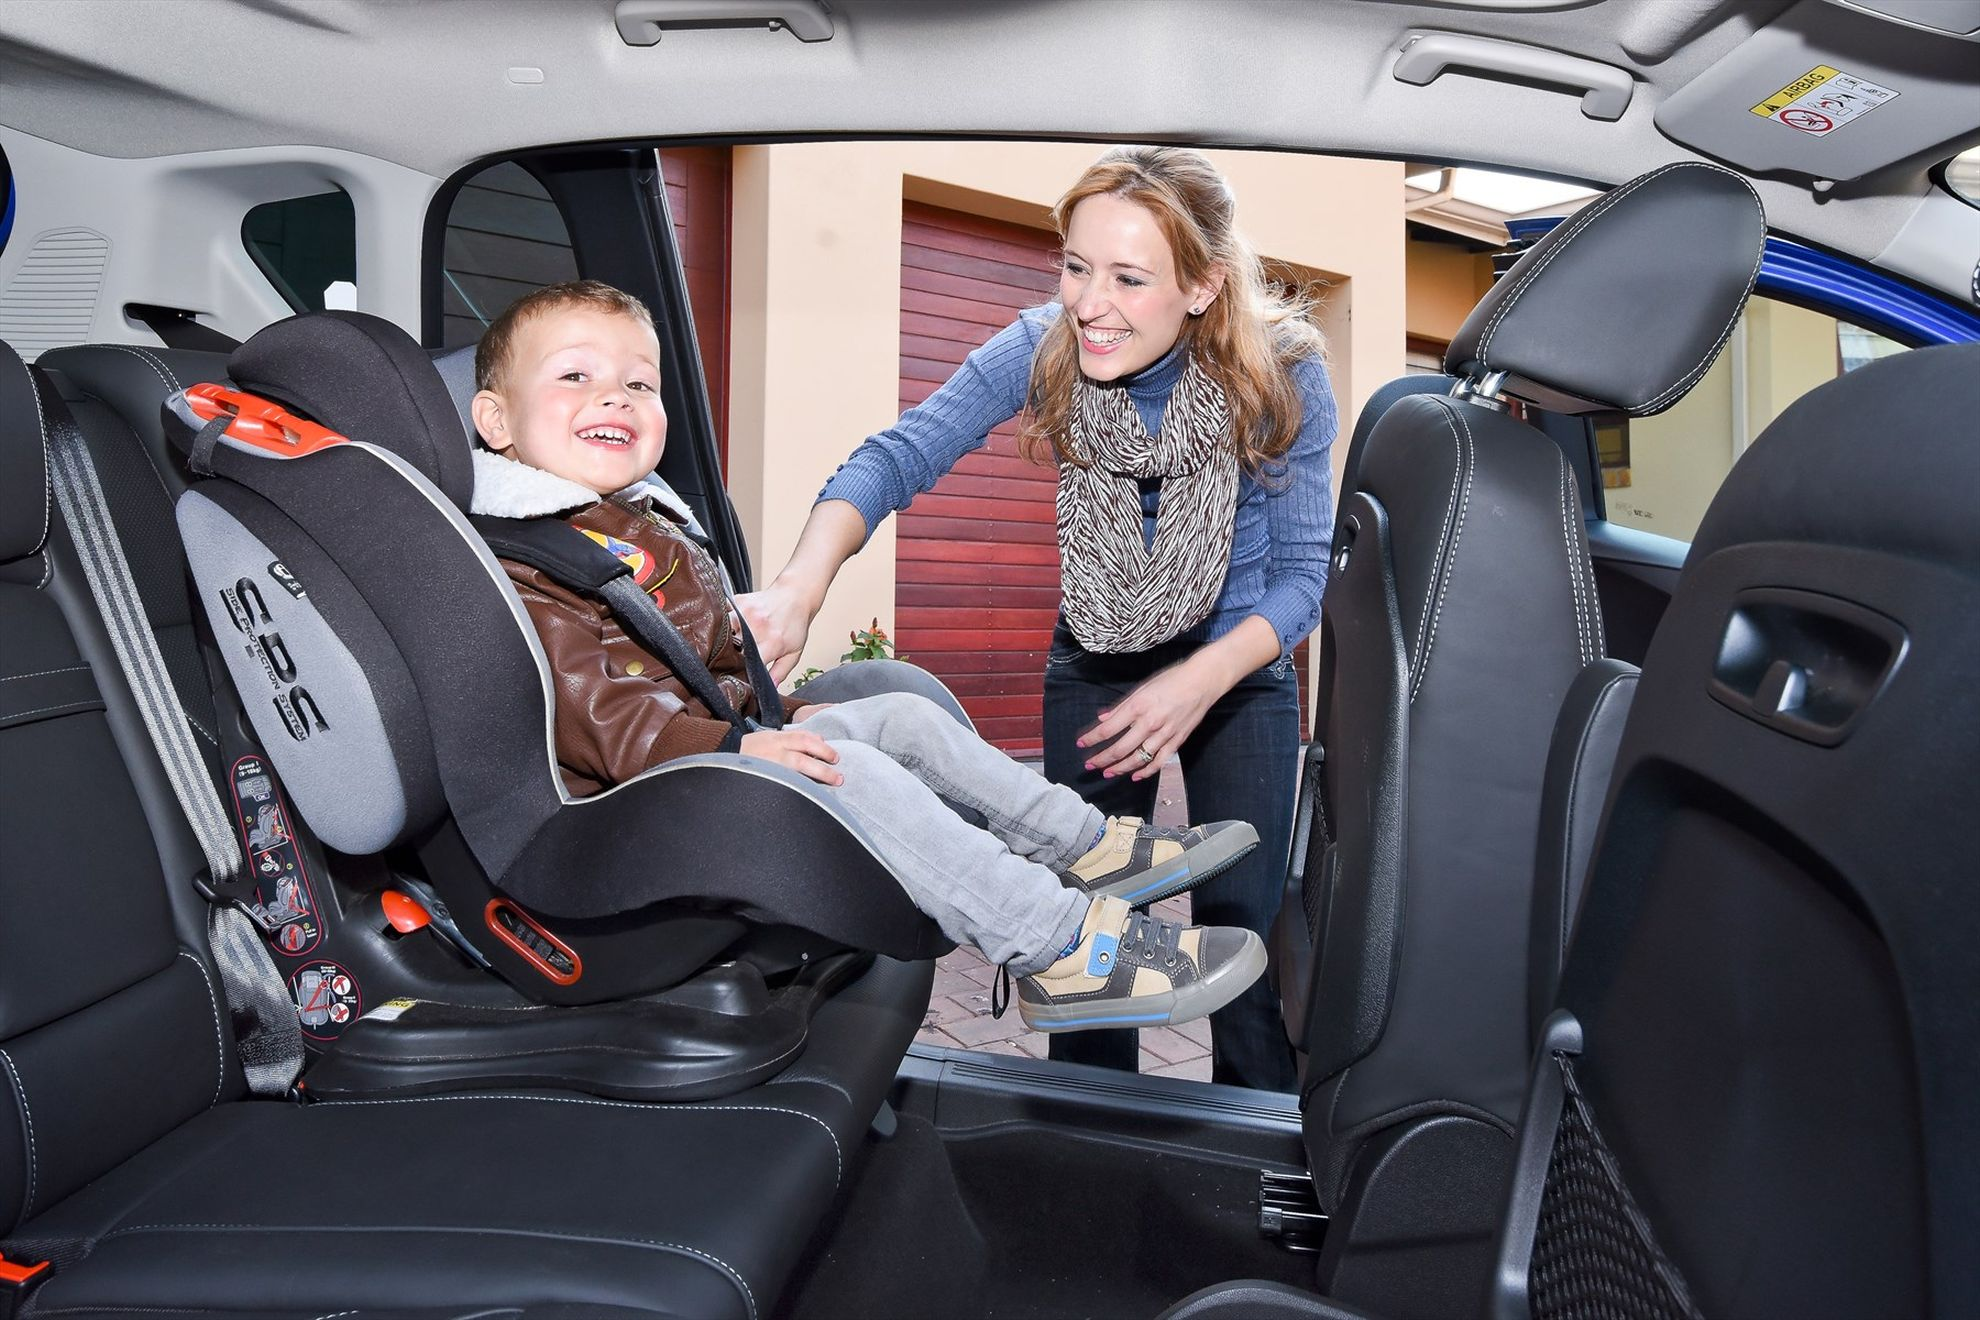 Stylish-New-Ford-B-MAX-Challenges-Traditional-Small-Car-Thinking-interior-1